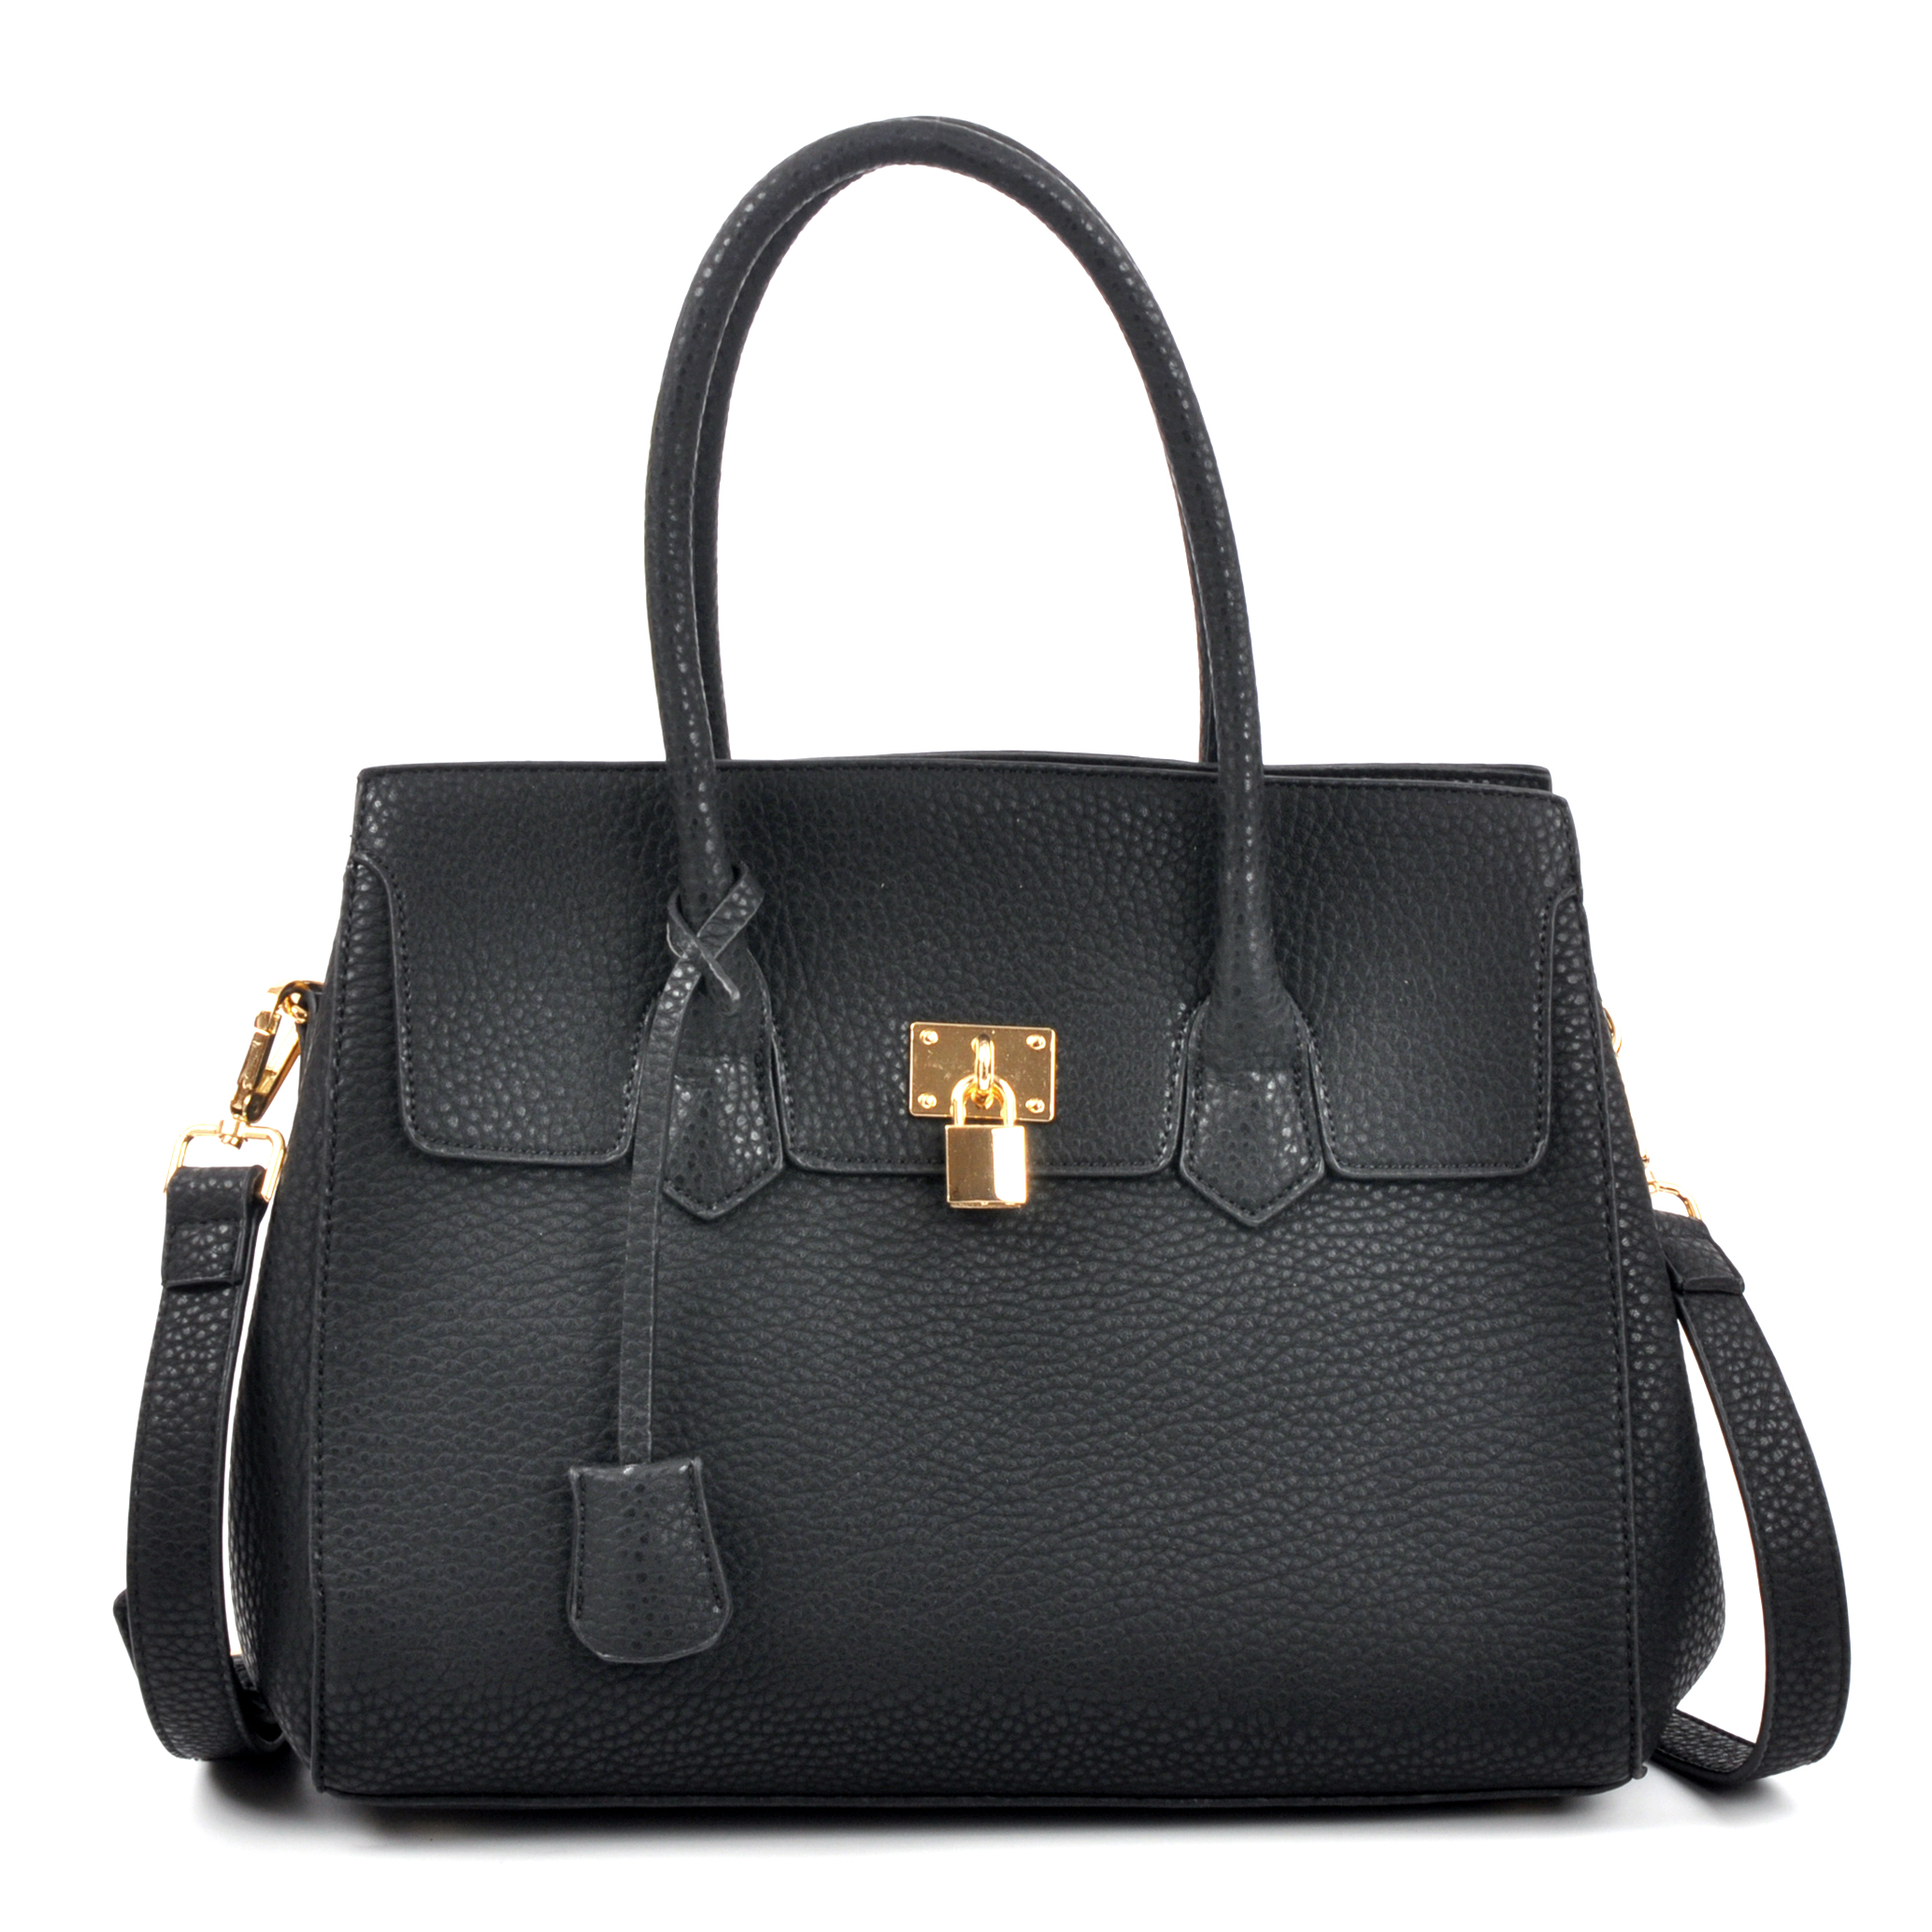 Kiss Lock Compartment Padlock Satchel with Shoulder Strap